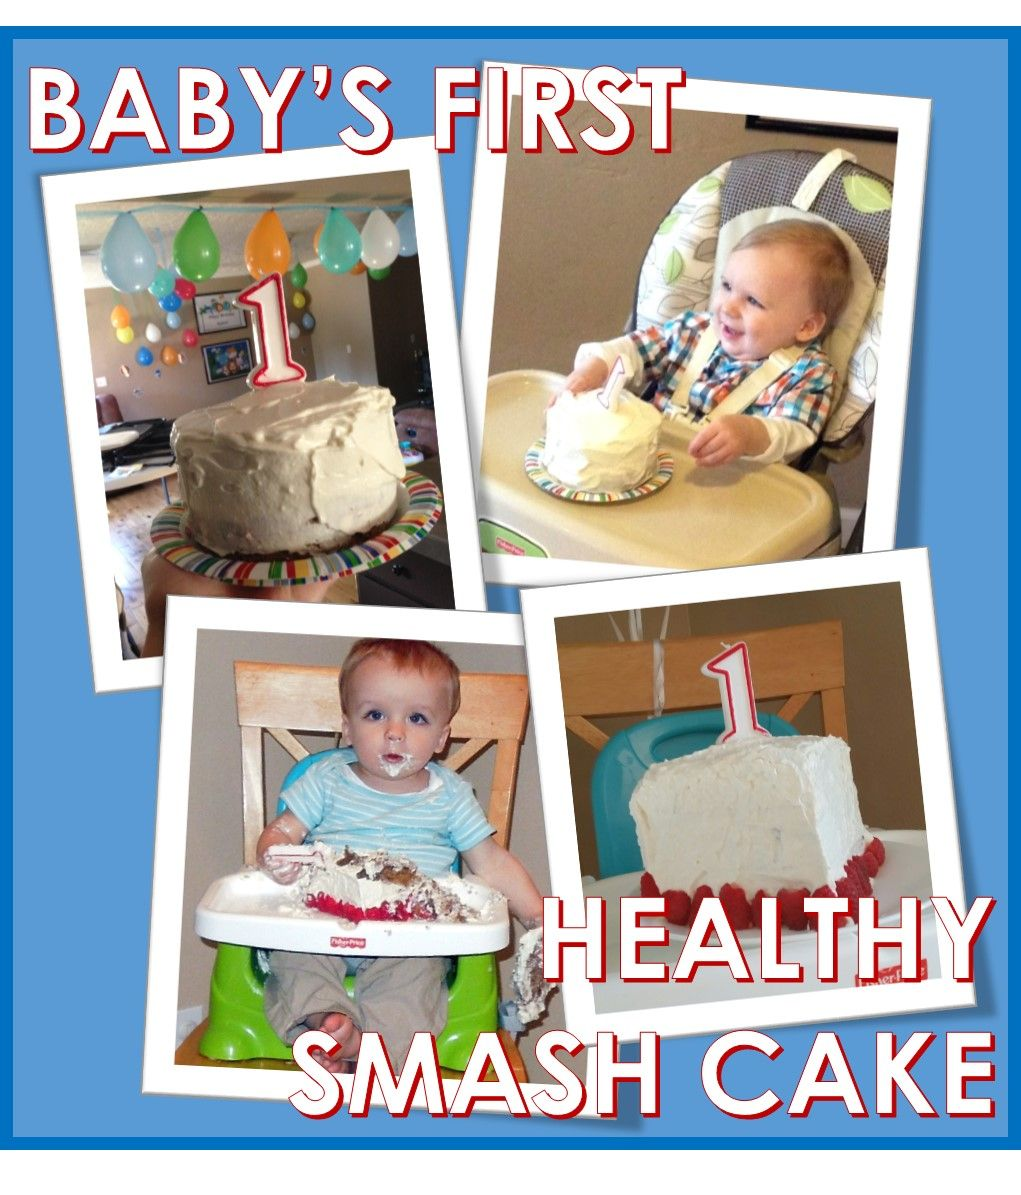 Healthy Smash Cake for Babys First Birthday from bekawhitakercom